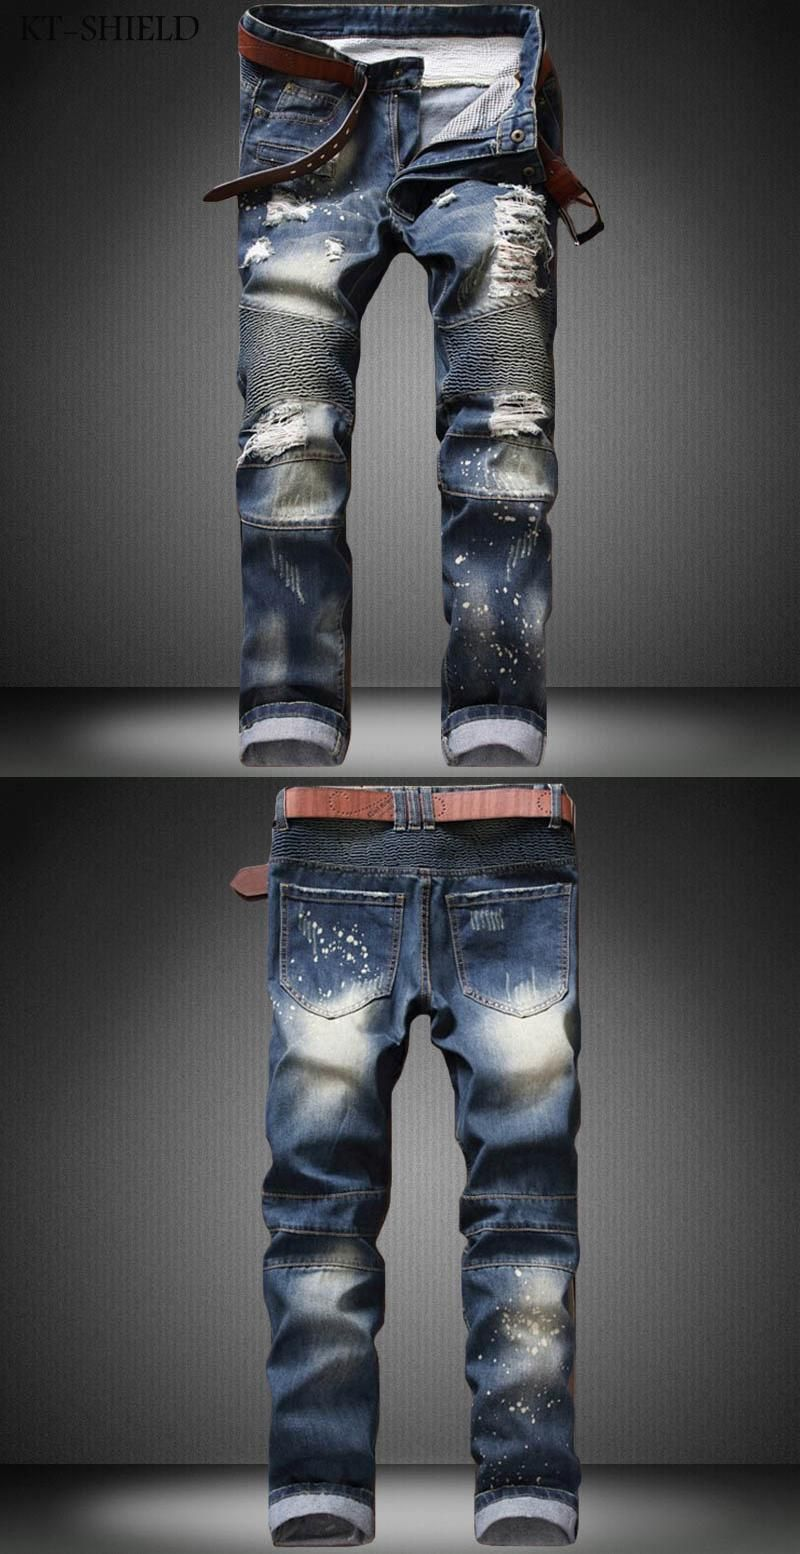 Skinny Jeans Mens Casual Trousers Pantalon Mezclilla Hombre Ripped Joger Riped Distressed Denim Motorcycle Moto Hip Hop Jogger